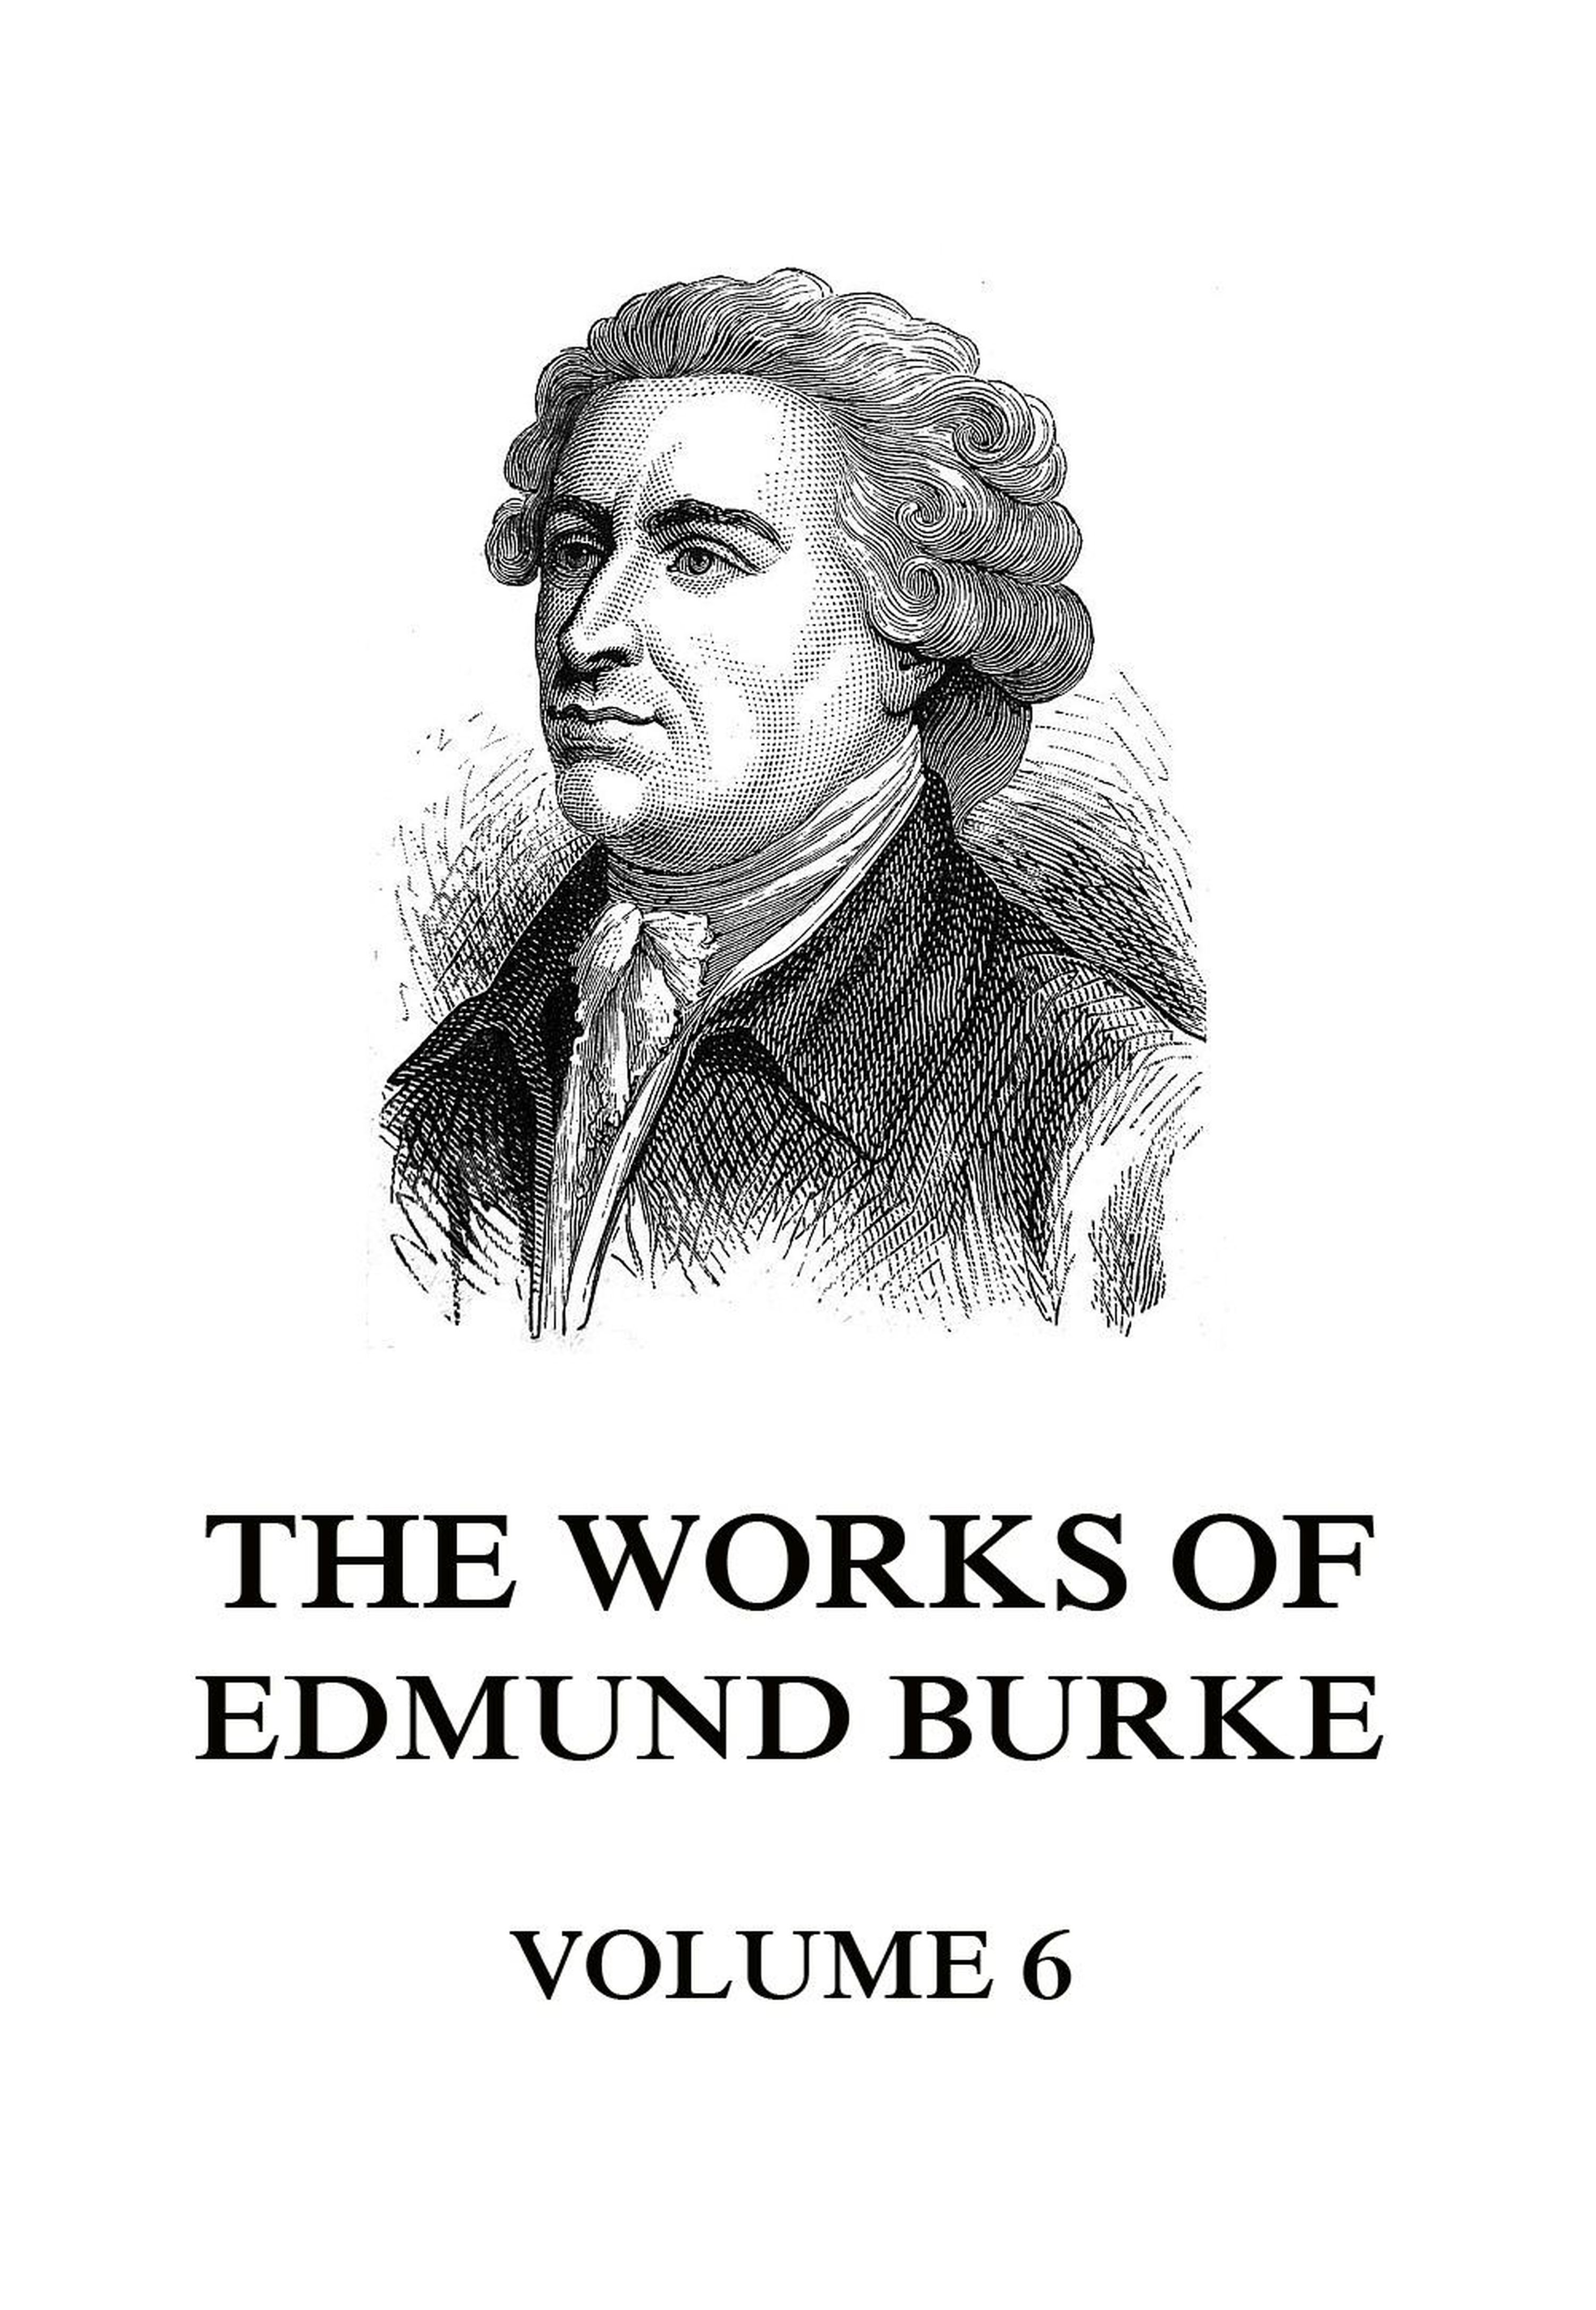 The Works of Edmund Burke Volume 6